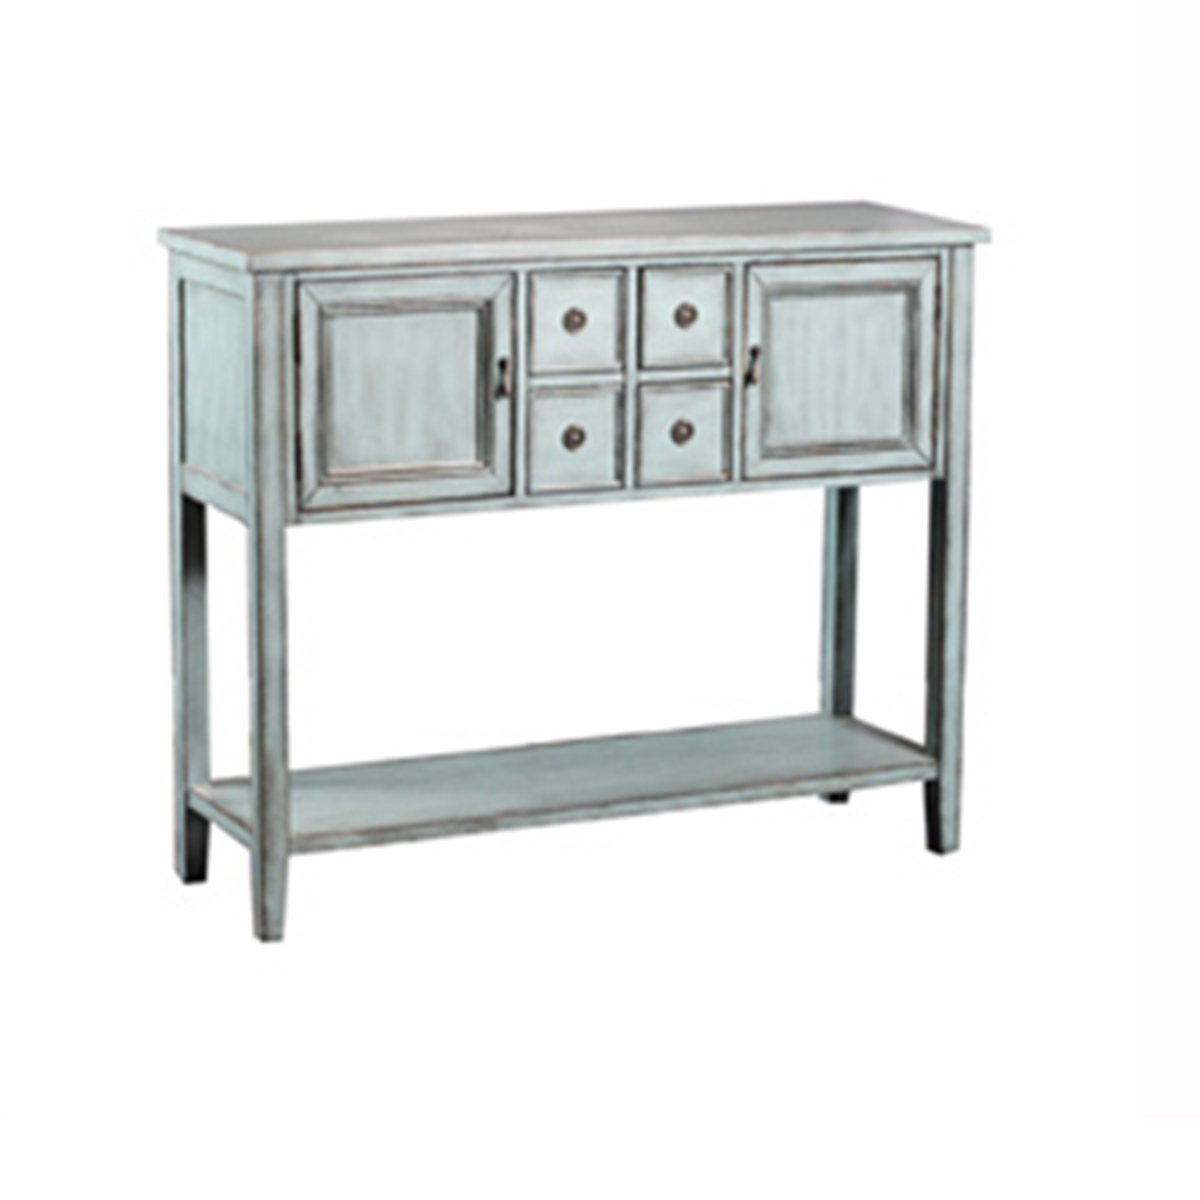 Powell Duplin Console Table - Blue